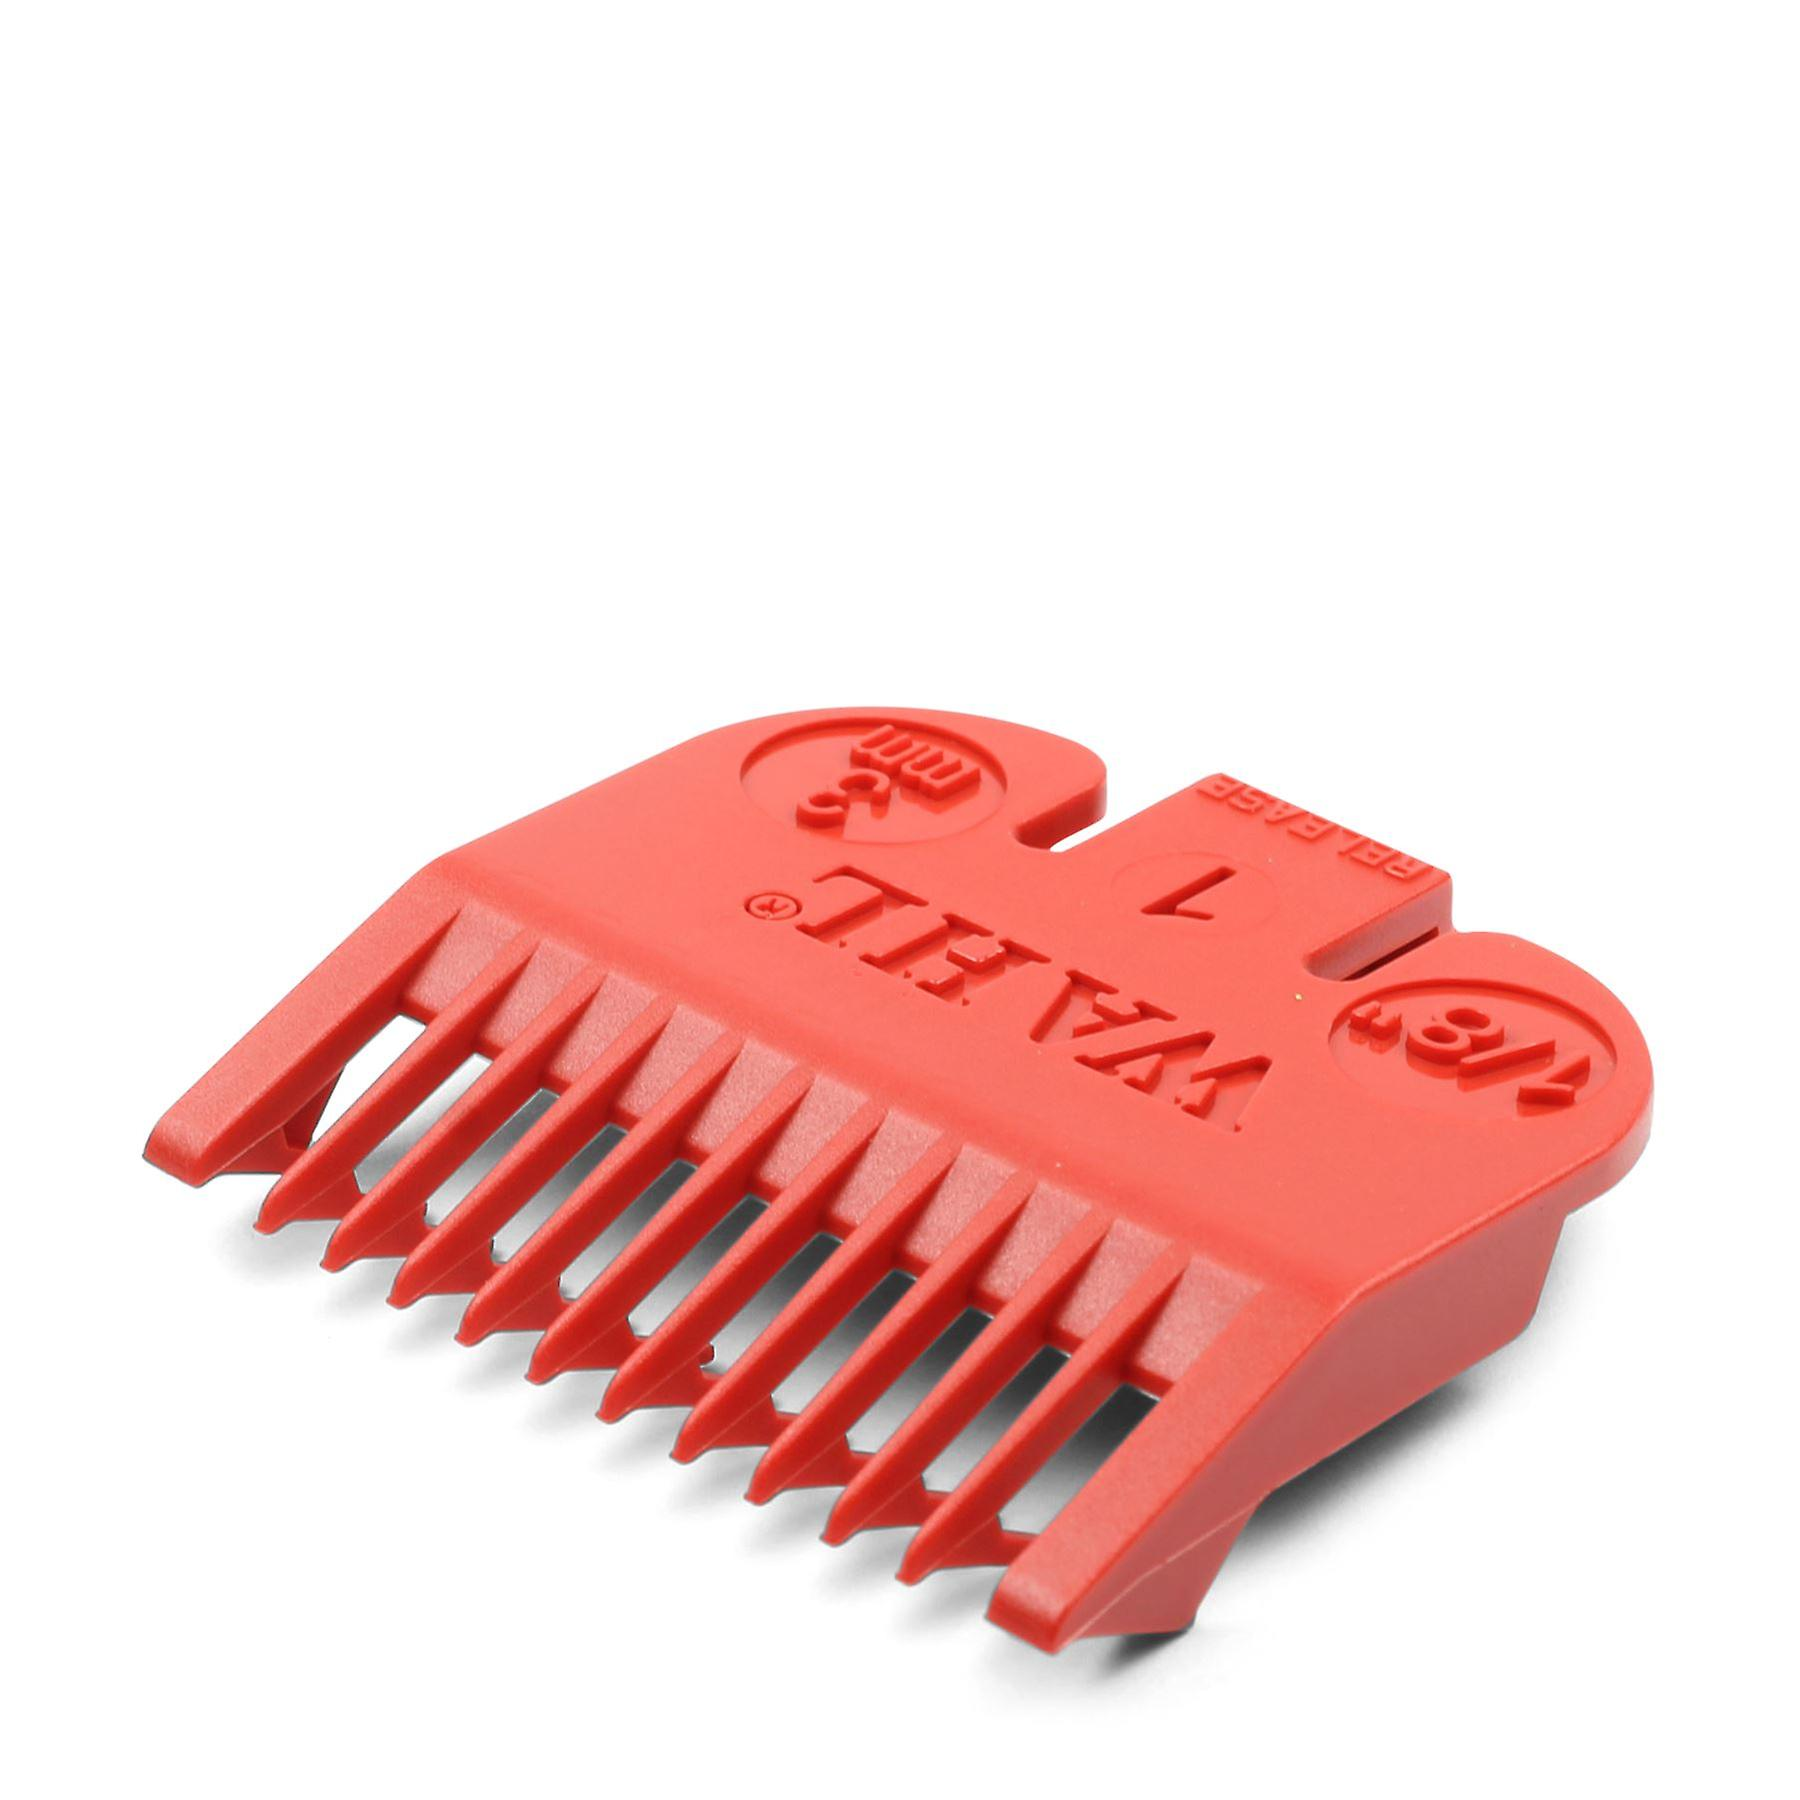 Wahl 3114-2001 No.1 Attachment Comb 3mm Red